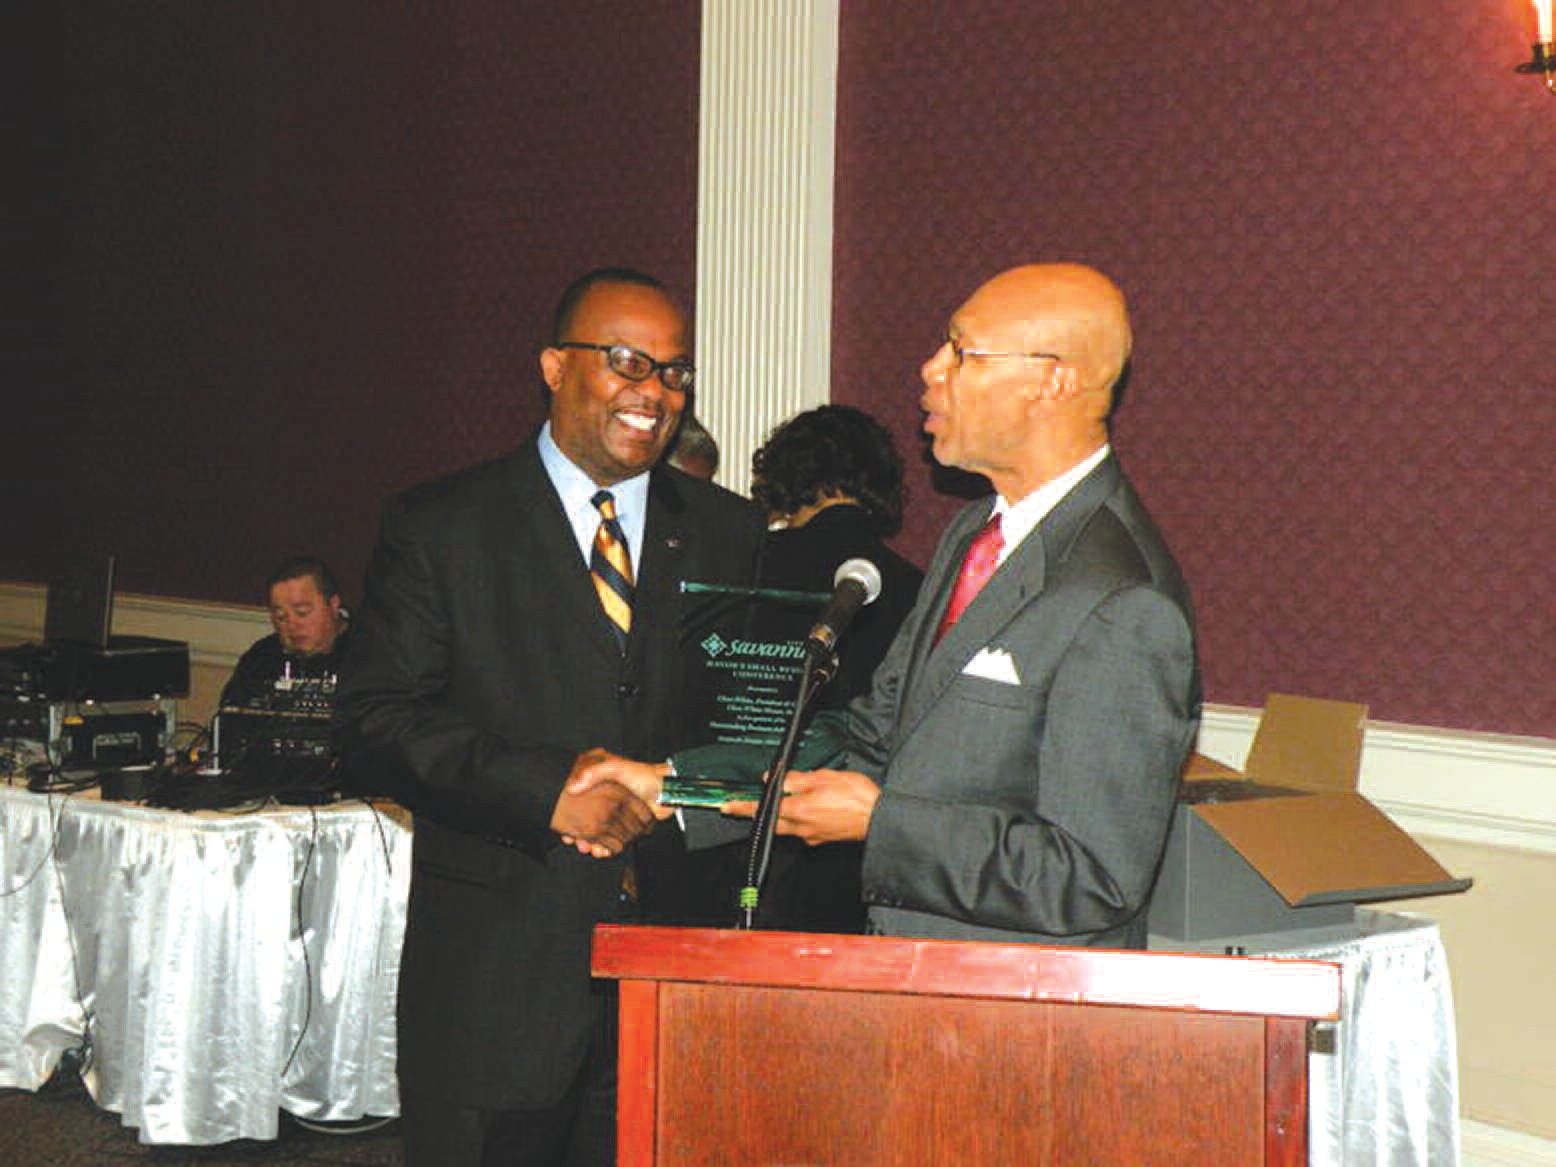 Cleve White, Cleve White Nissan is present an award from Mayor Otis Johnson